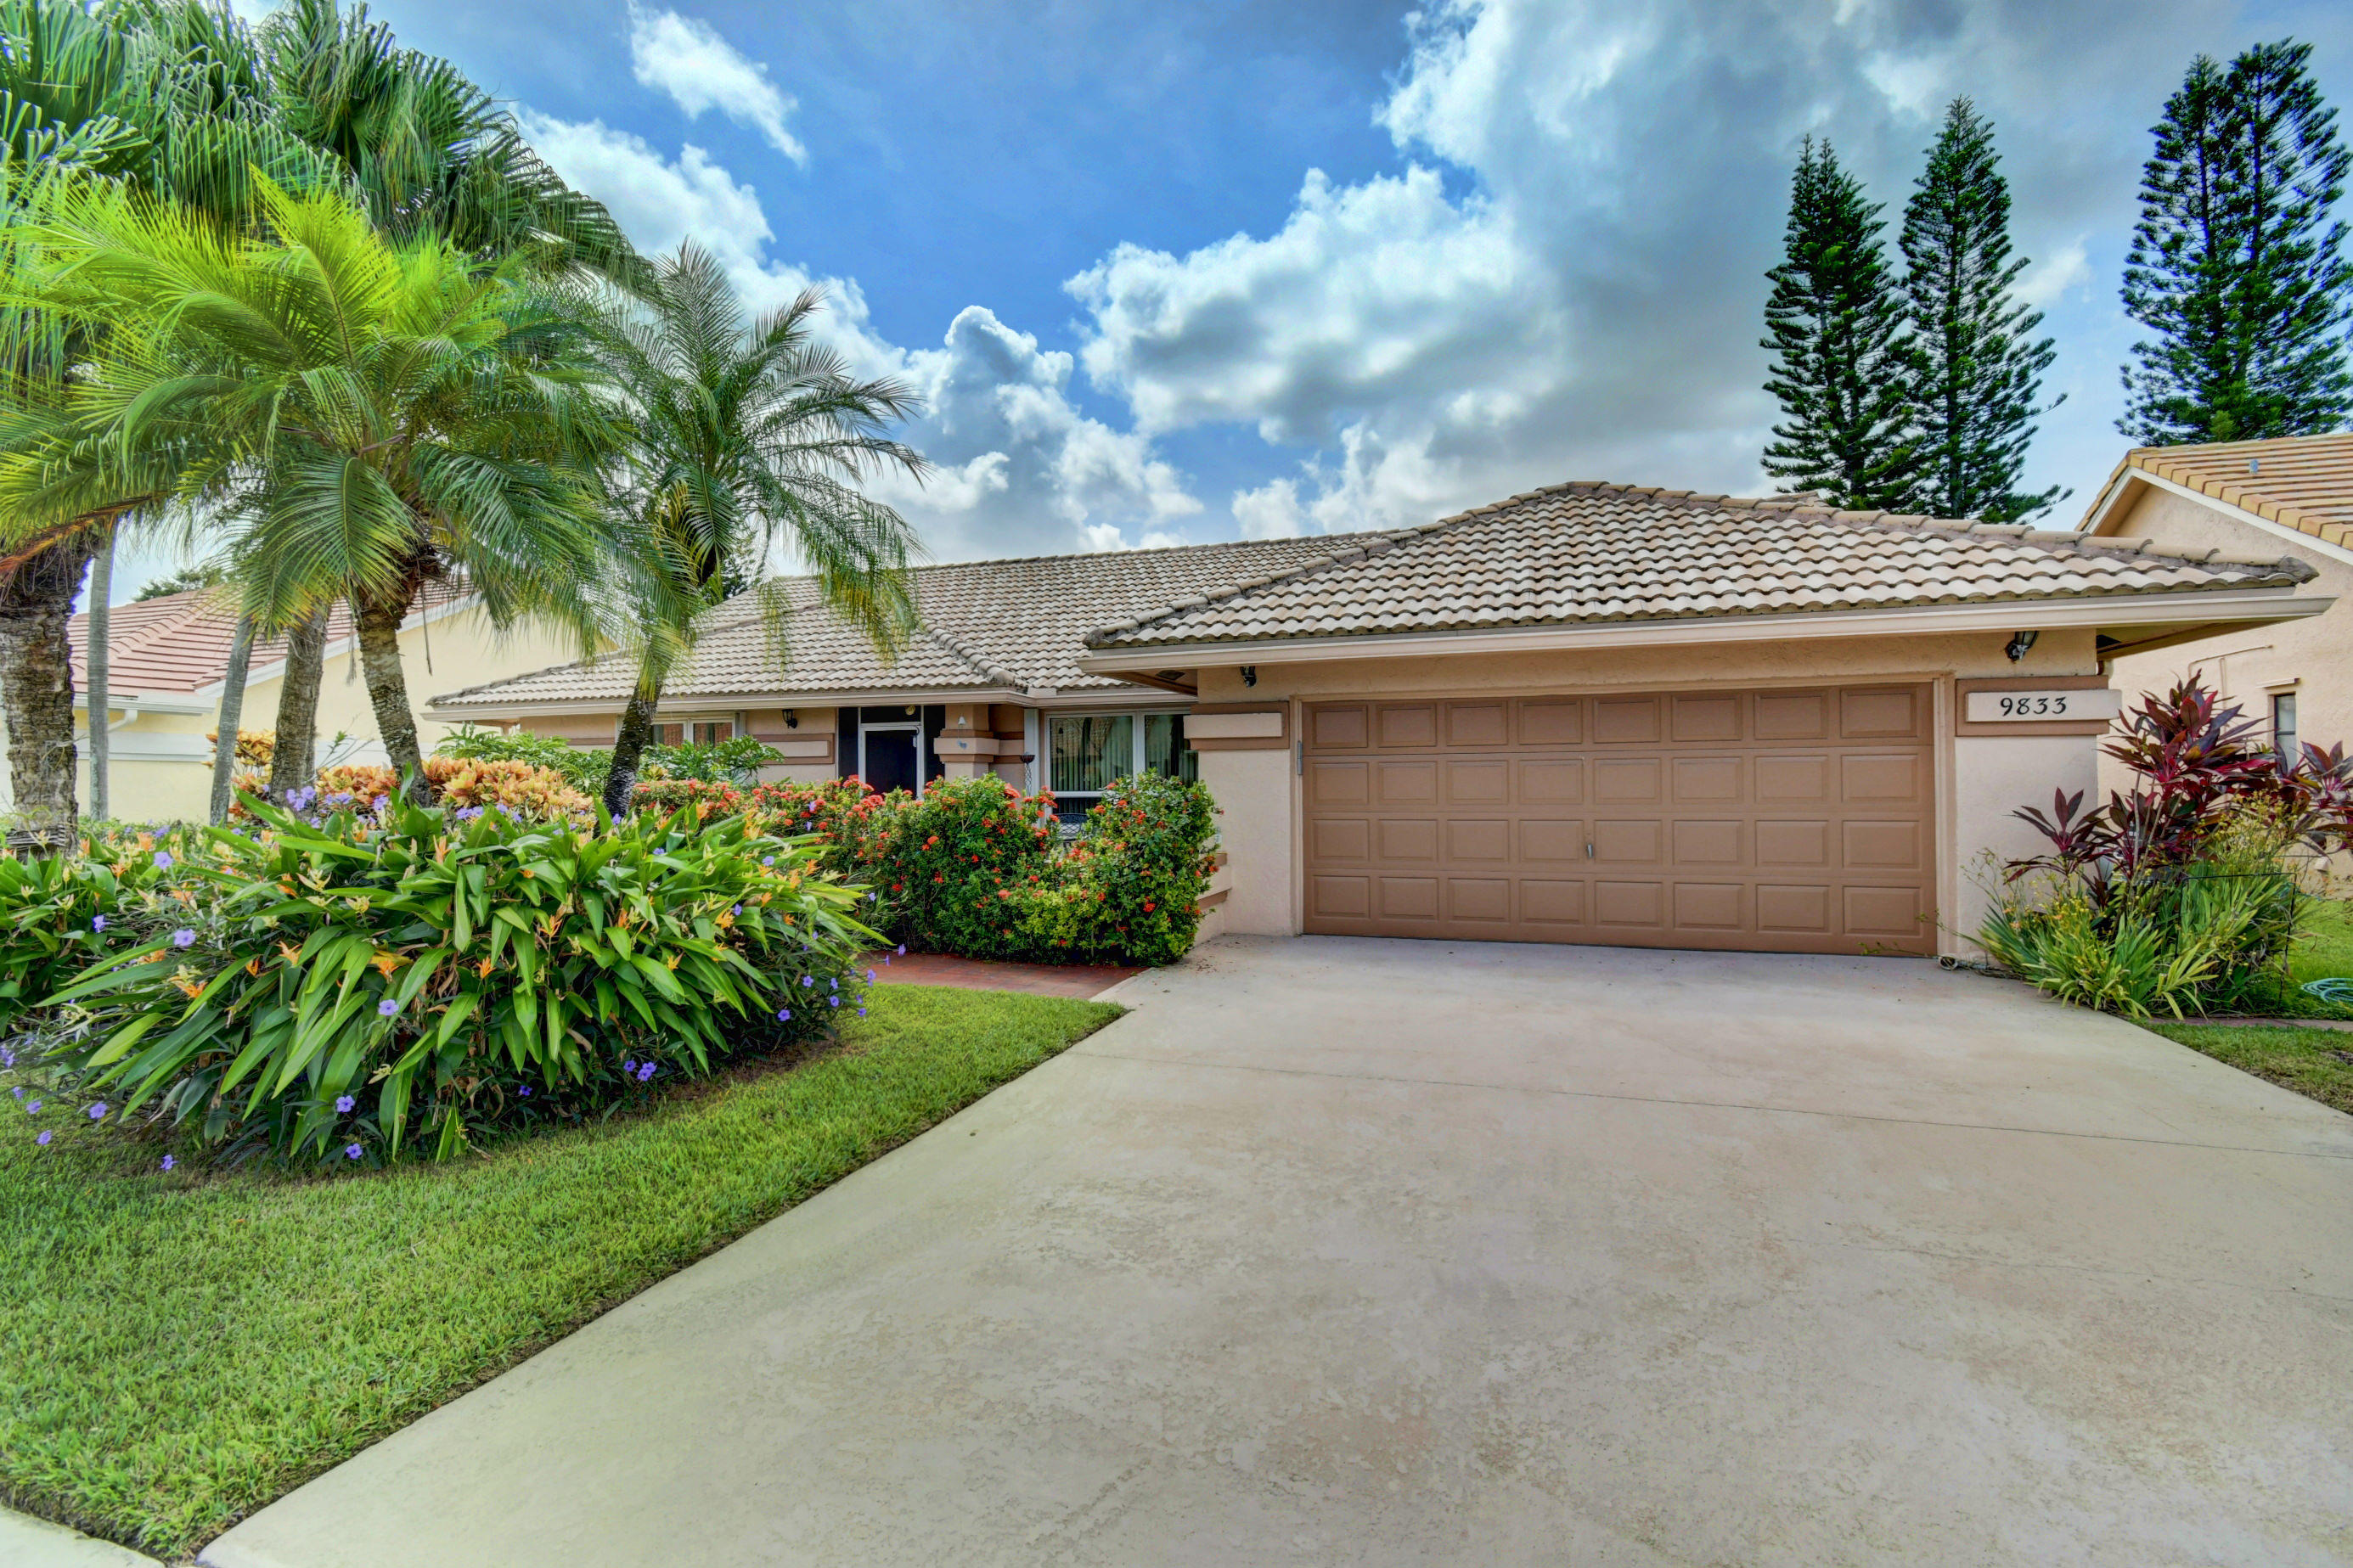 9833 Majestic Way  Boynton Beach FL 33437